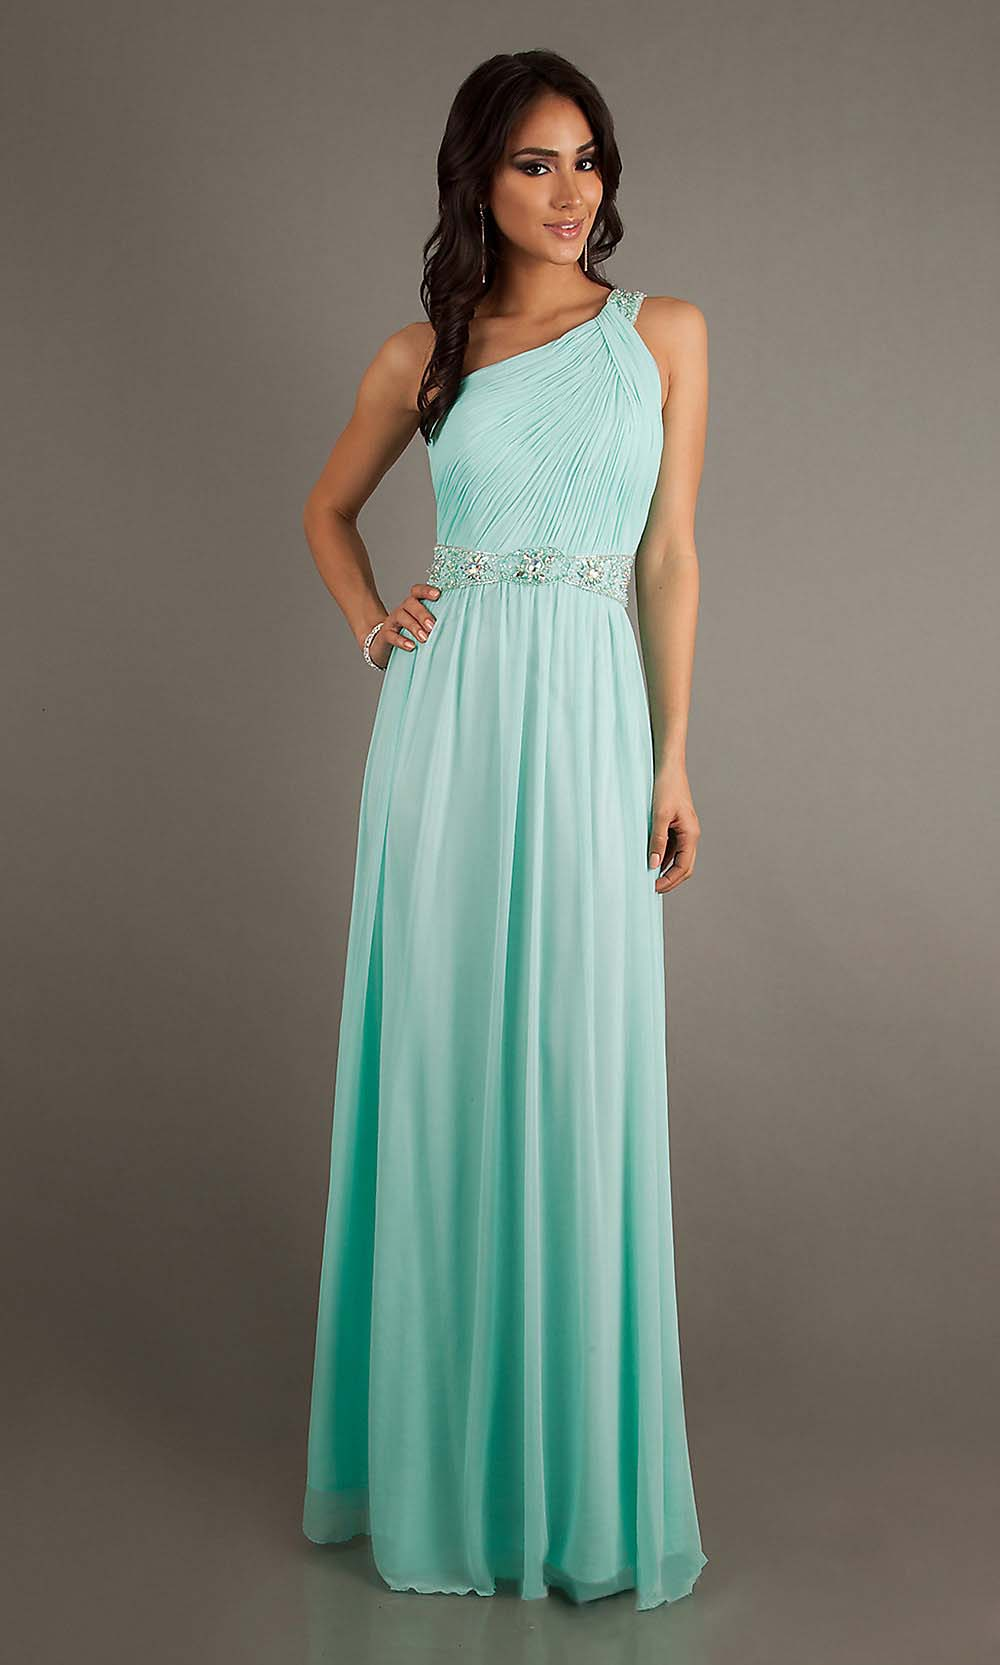 Why you need One Shoulder Gown - 24 Dressi